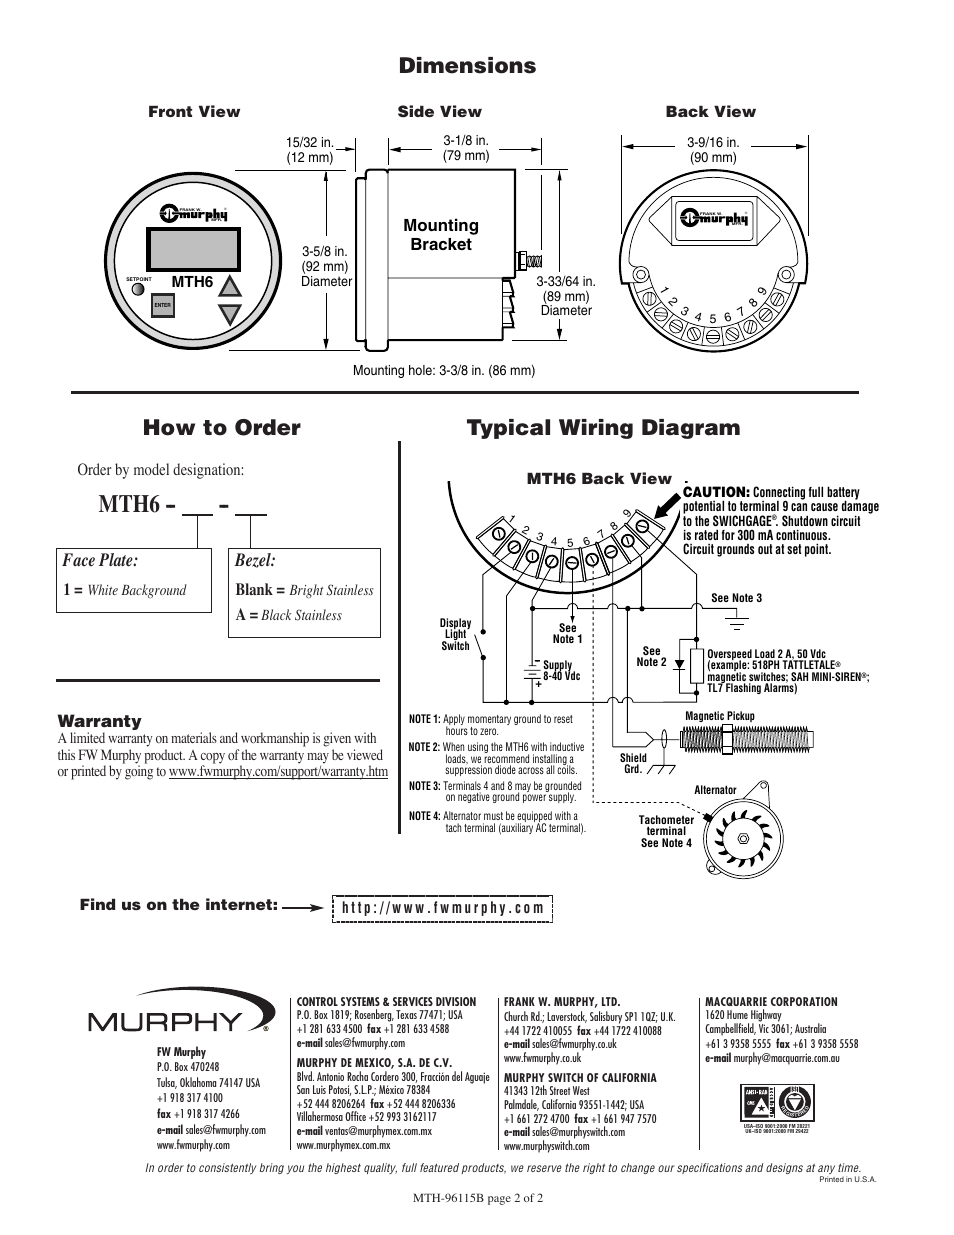 blank wiring diagram Images Gallery